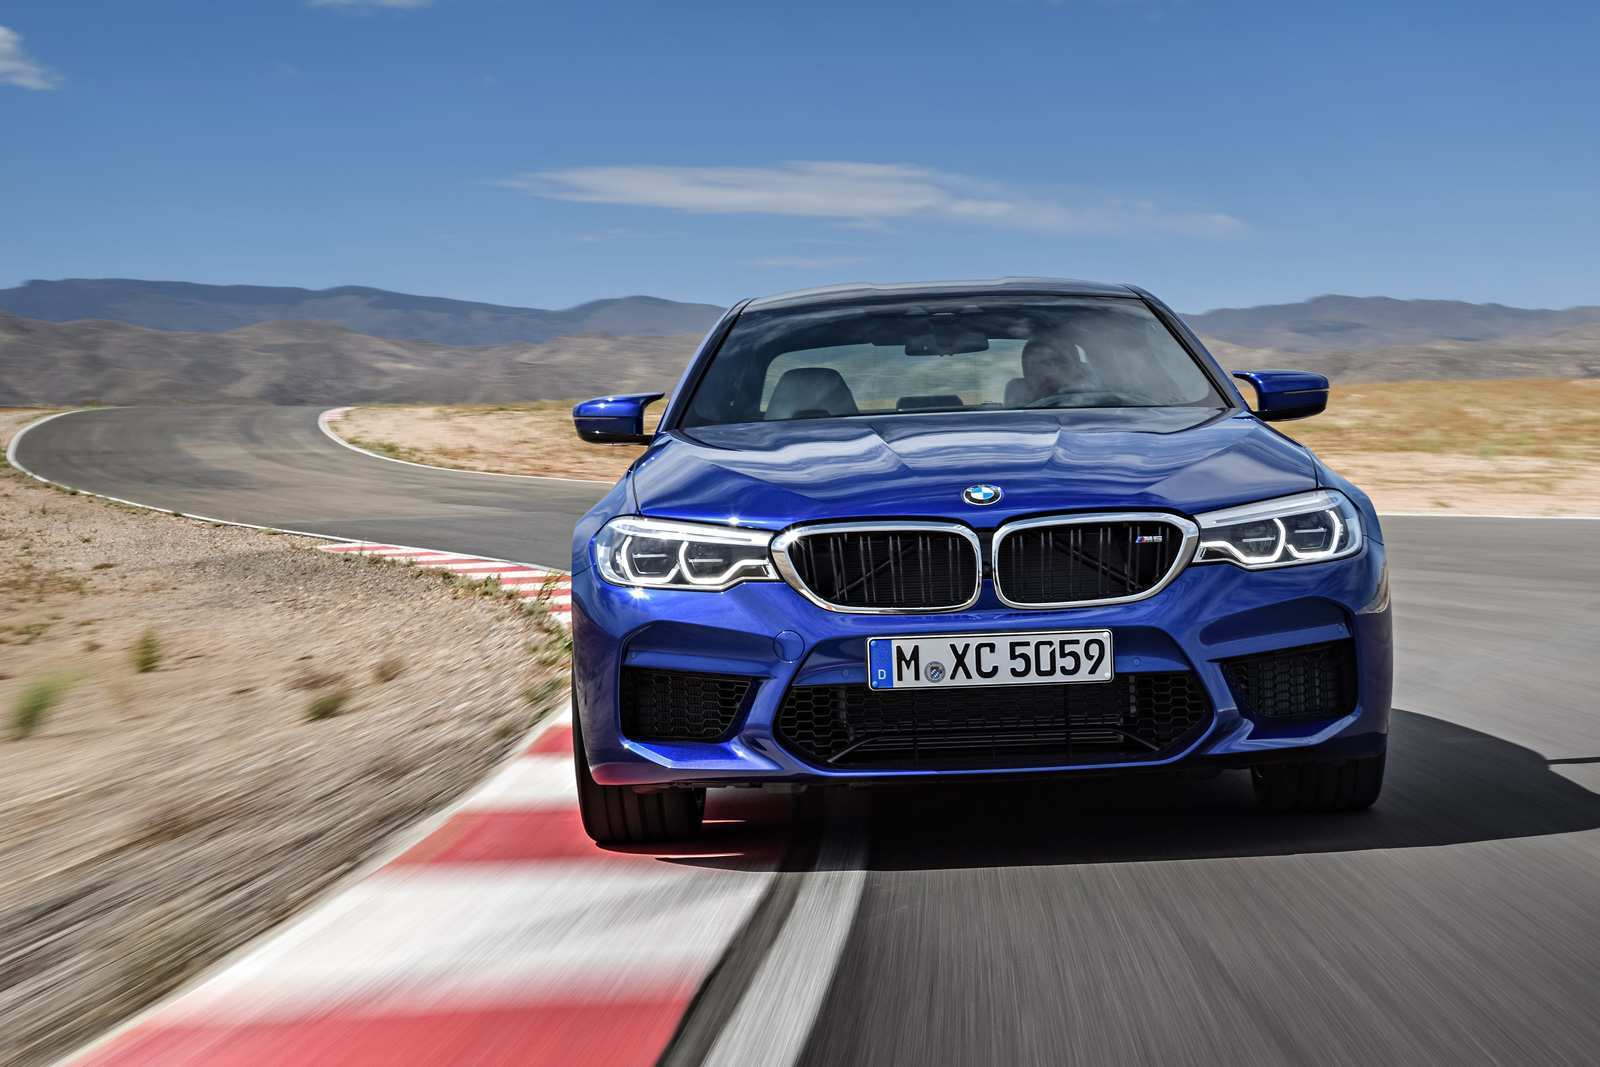 68 All New 2020 BMW M5 Xdrive Awd Photos